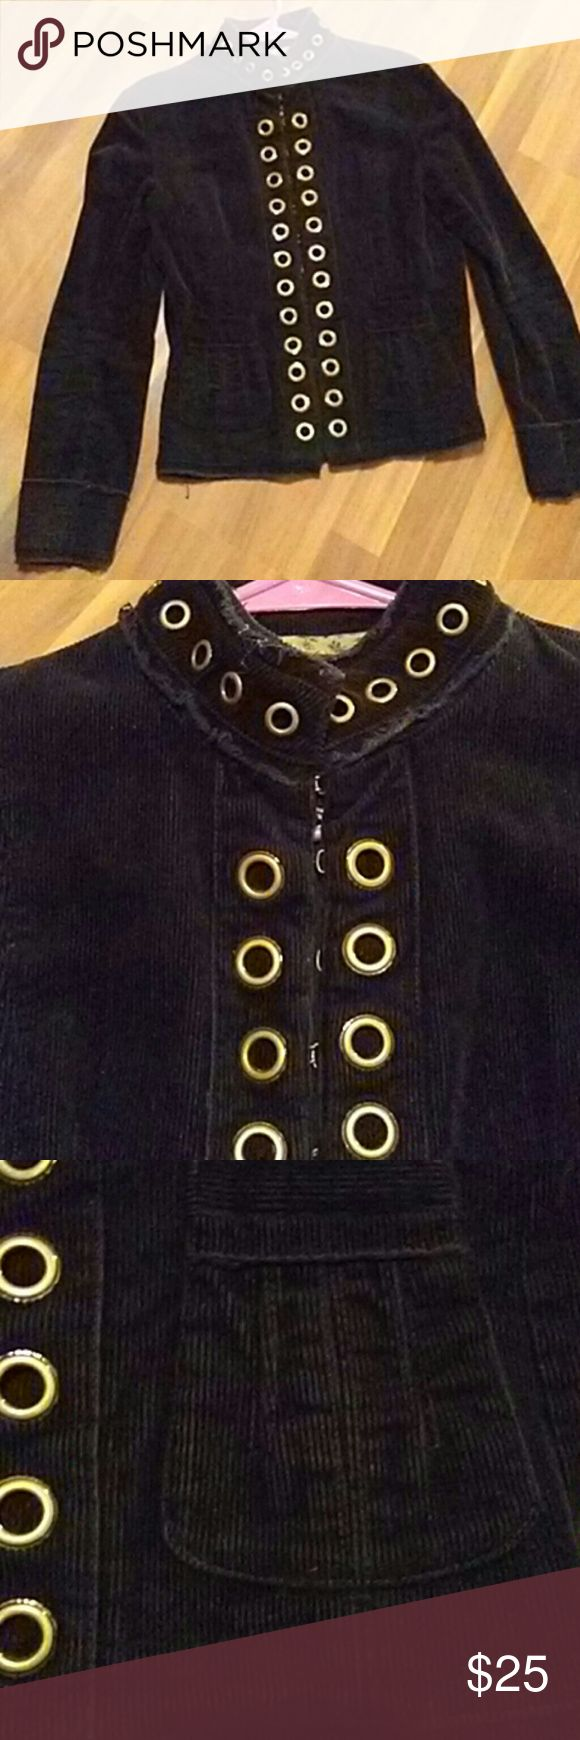 """unique jacket coat this is by far one of the most unique and cool jacket ive ever owned. it reminds me a little of the renaissance period with all the clasps. it is  black chord with copper round """"buttons""""  and clasps. it is missing one hook at the very bottom, pls see all pics. it can be fixed or just ignored,  doesn't make the jacket look stupid or anything.in great condition.no fuzziest, stains, or rips. very cute fabric design were the. wrists are. Sisters Jackets & Coats"""